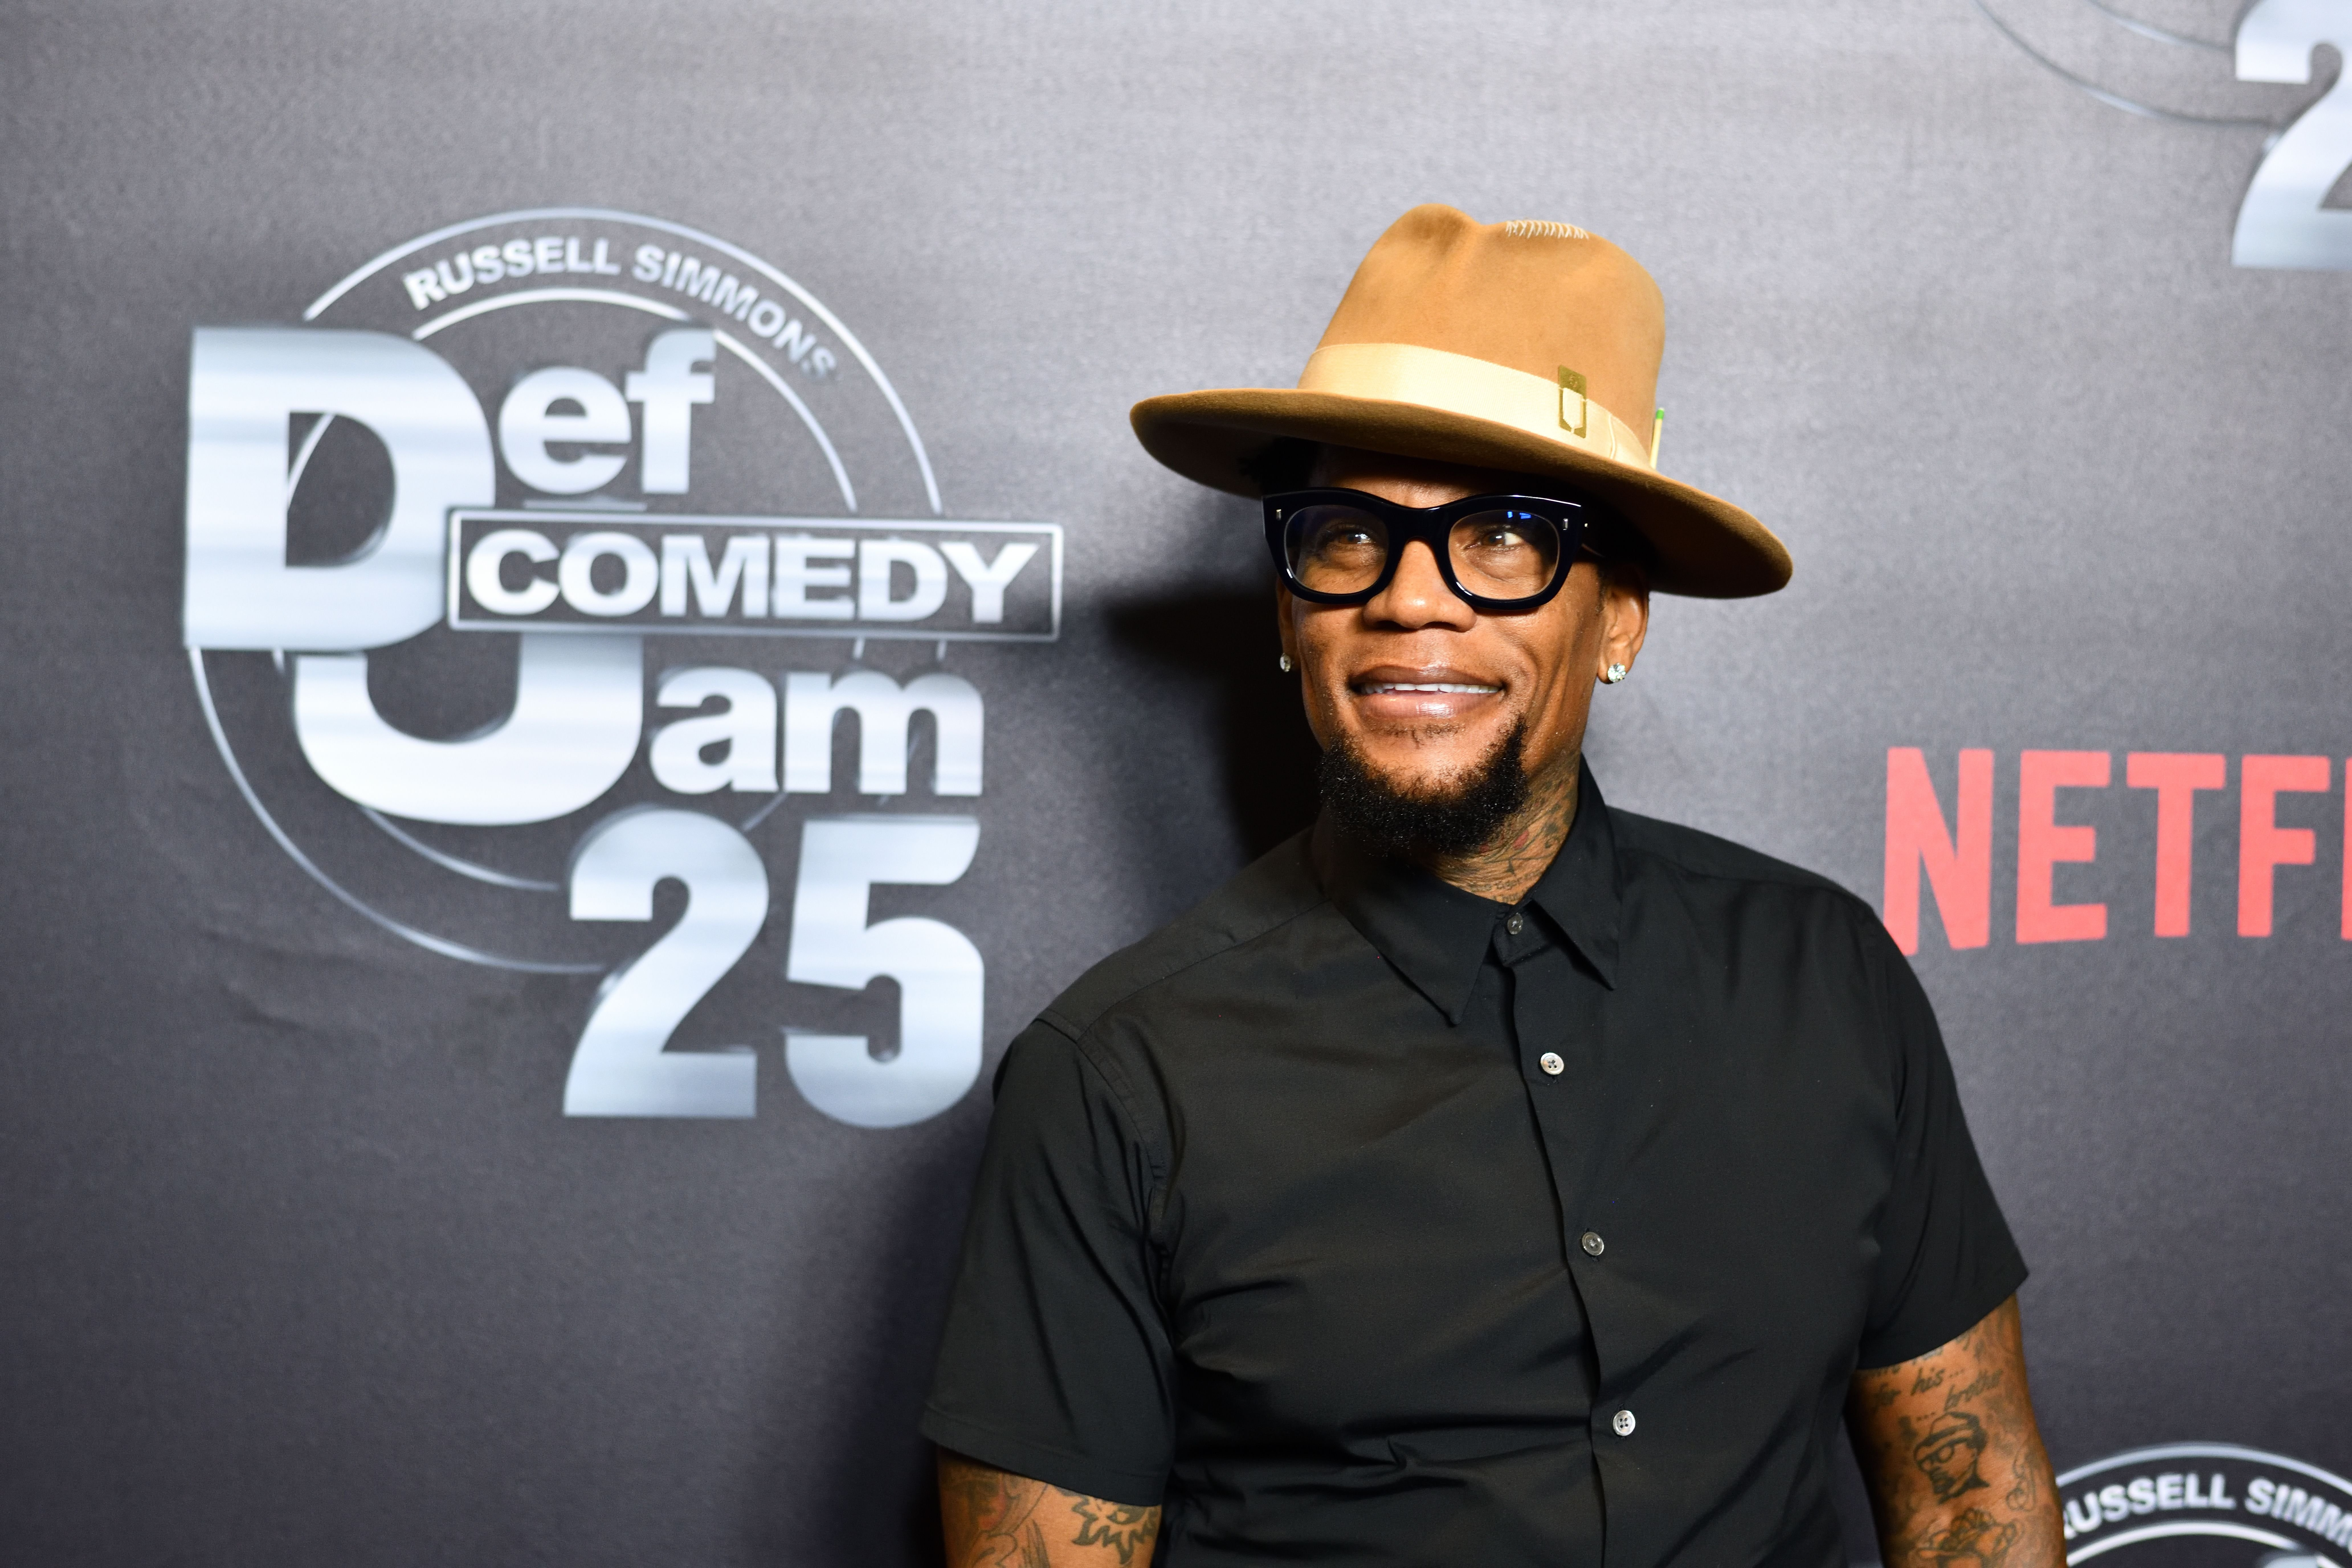 """D.L. Hughley during the """"Def Comedy Jam 25"""" Special Event at The Beverly Hilton Hotel on September 10, 2017 in Beverly Hills, California. 